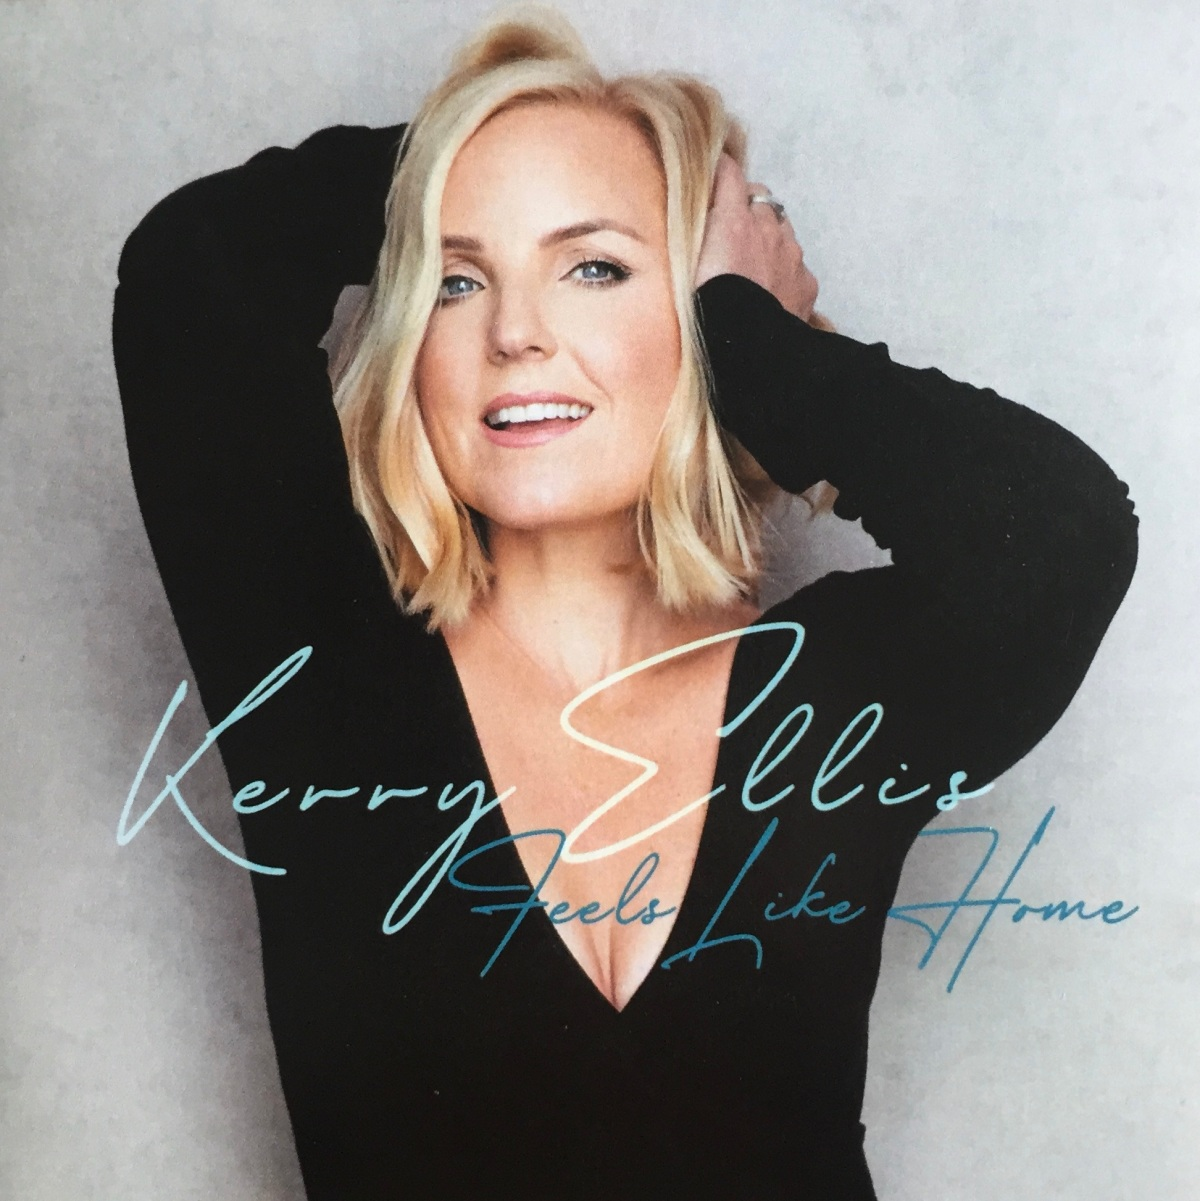 Cover for the Kerry Ellis album Feels Like Home, showing the singer wearing a black top with a deep v-neck, and running her hands back through her blonde hair as she smiles.